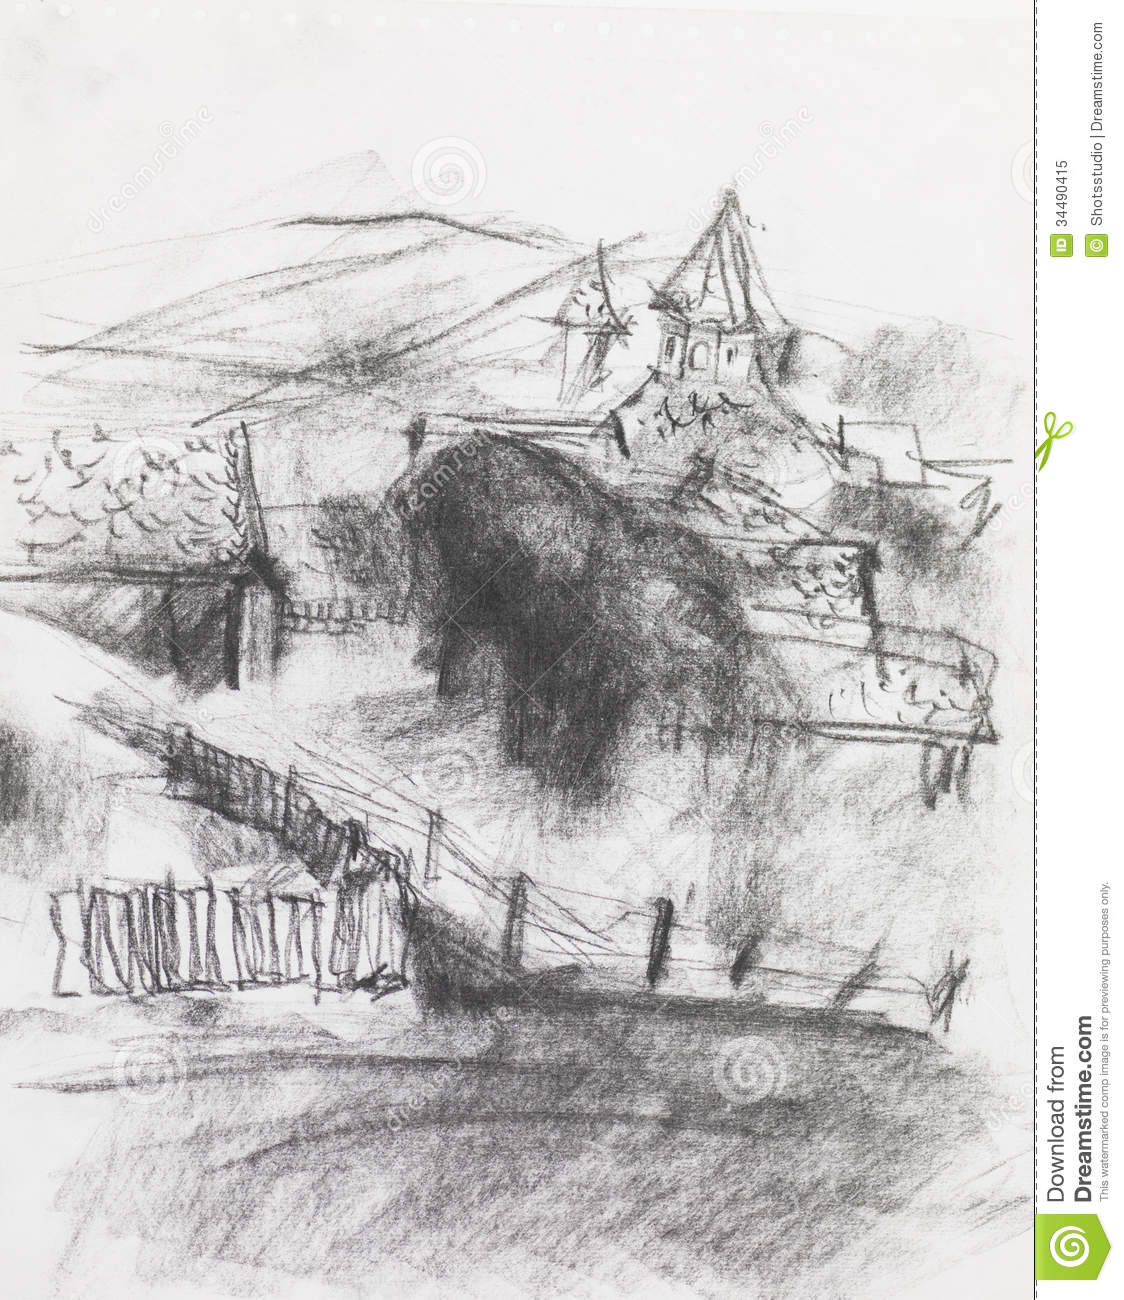 Hand drawn pencil illustration of a village